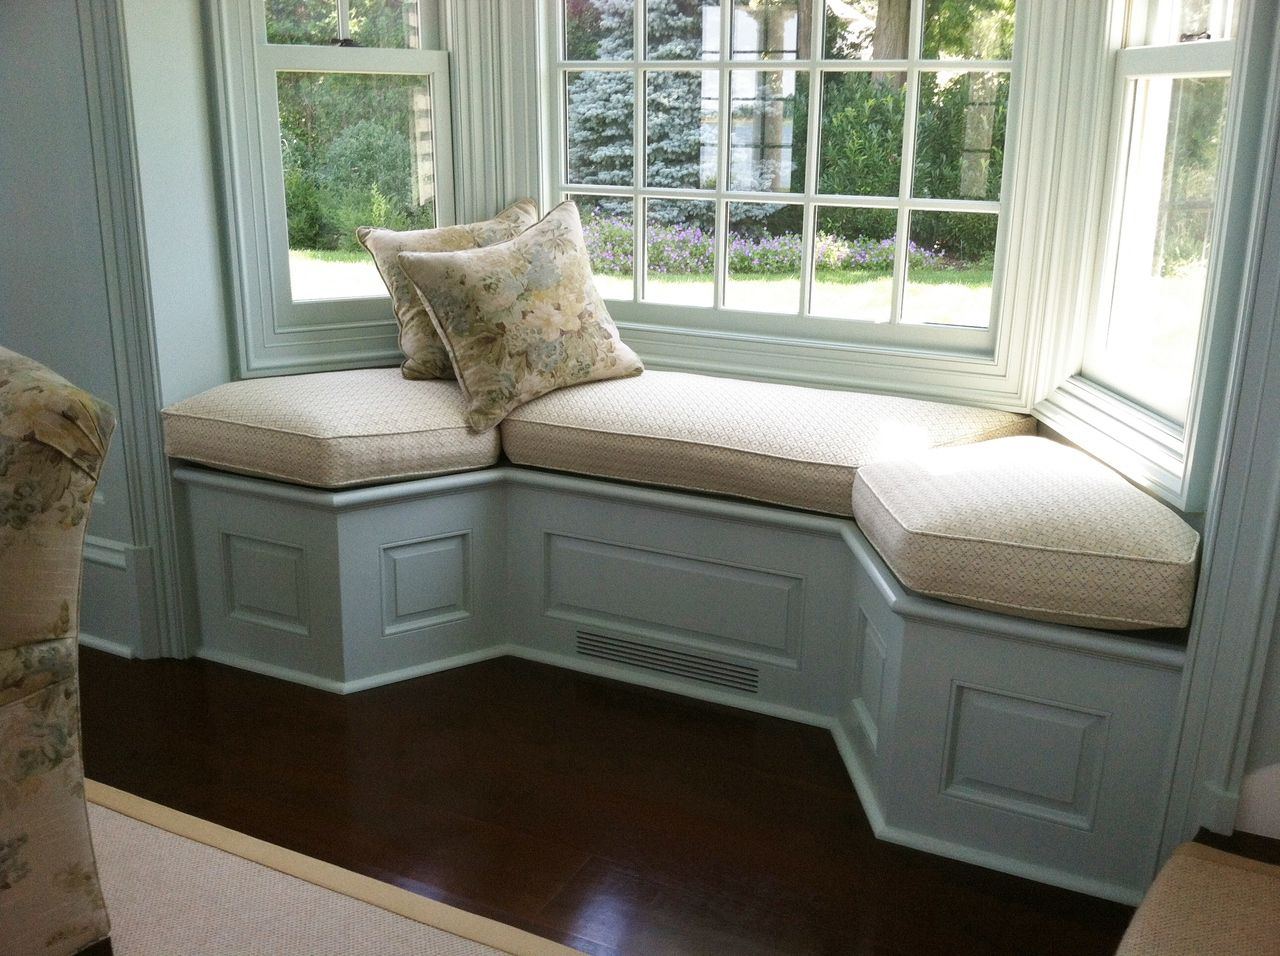 Image of: Window Bench Cushions Space